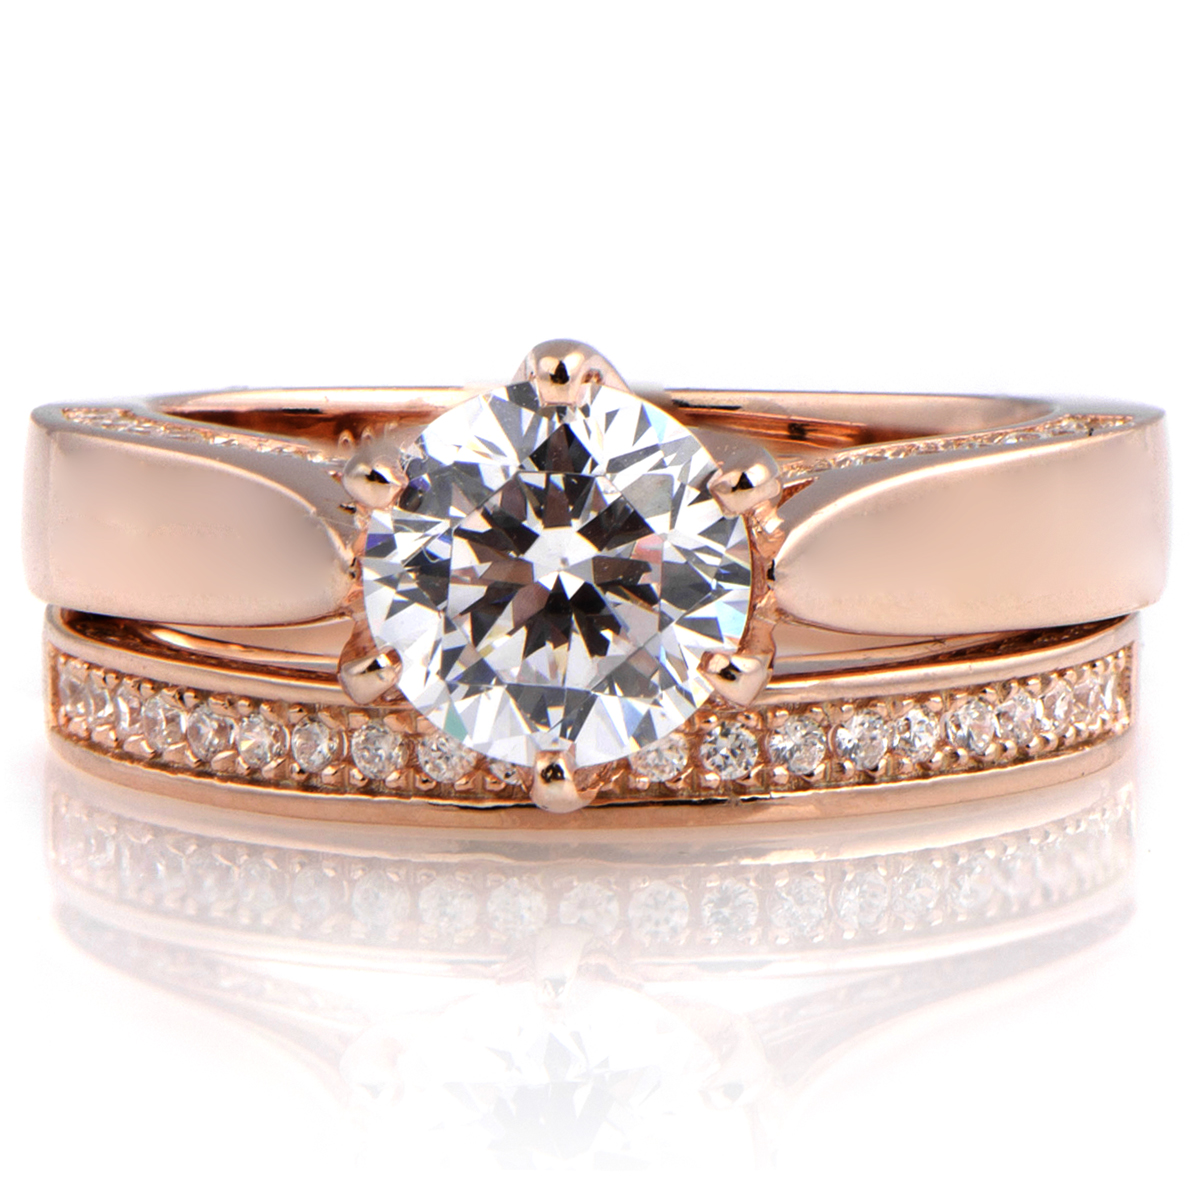 impossibly beautiful rose gold wedding engagement rings 4 rose gold wedding rings Gorgeous Rose Gold Engagement Rings